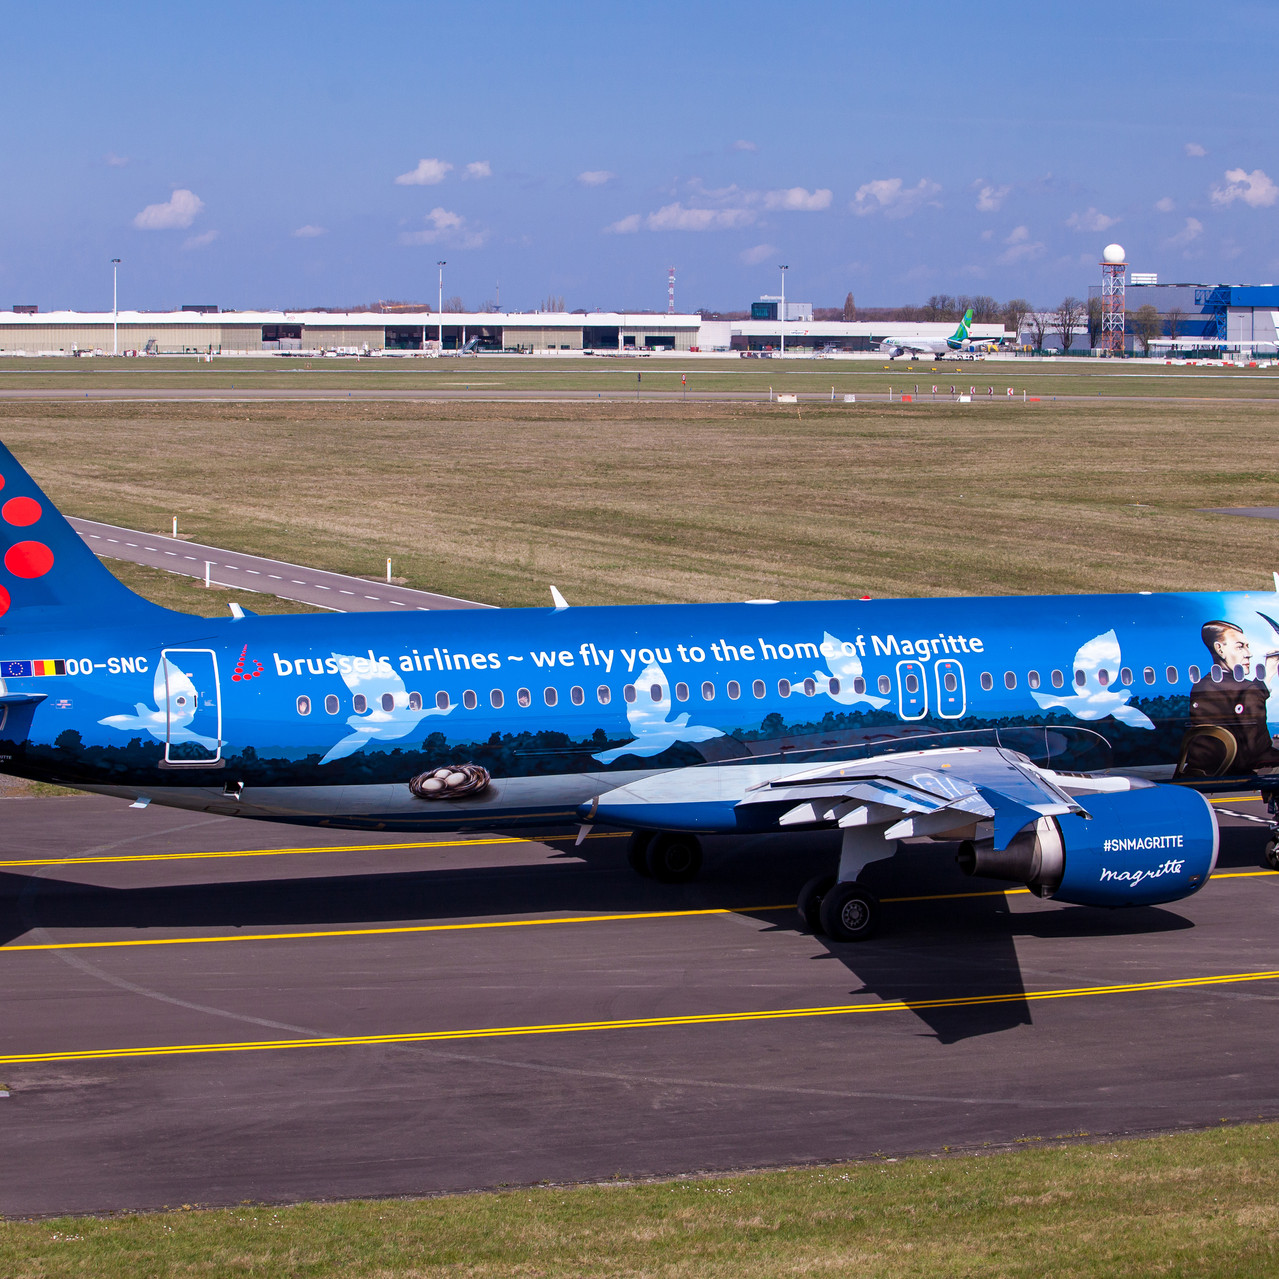 017_Taxiing to R 25 right_Brussels Airli